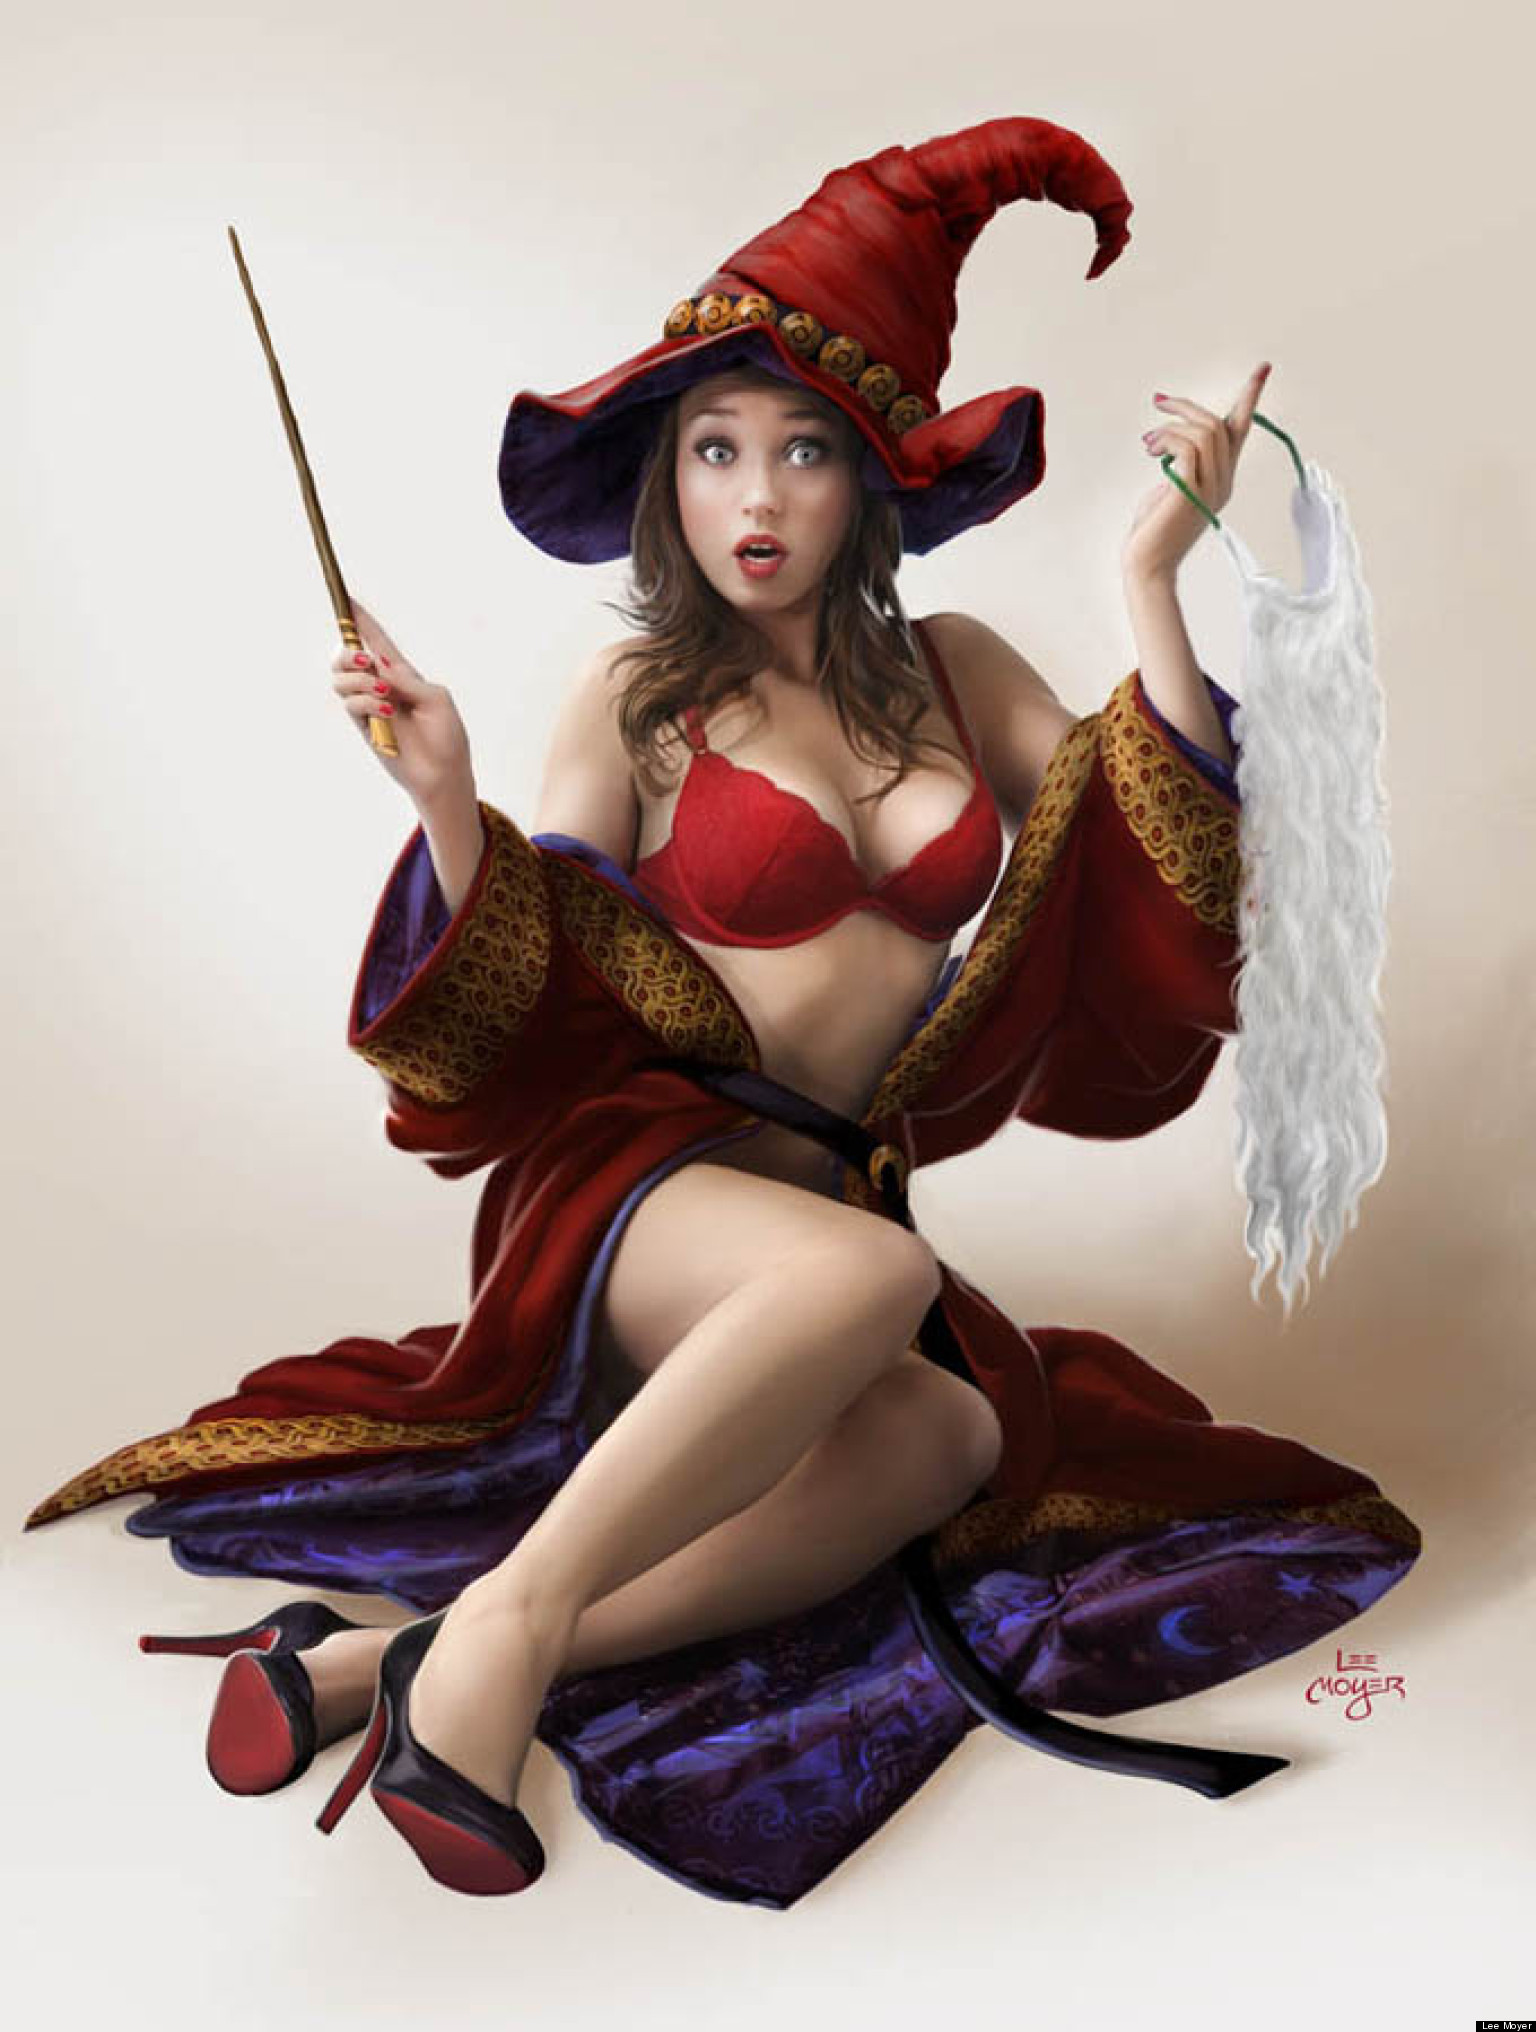 pin up on a lee moyer literary pin up calendar illustrator reveals